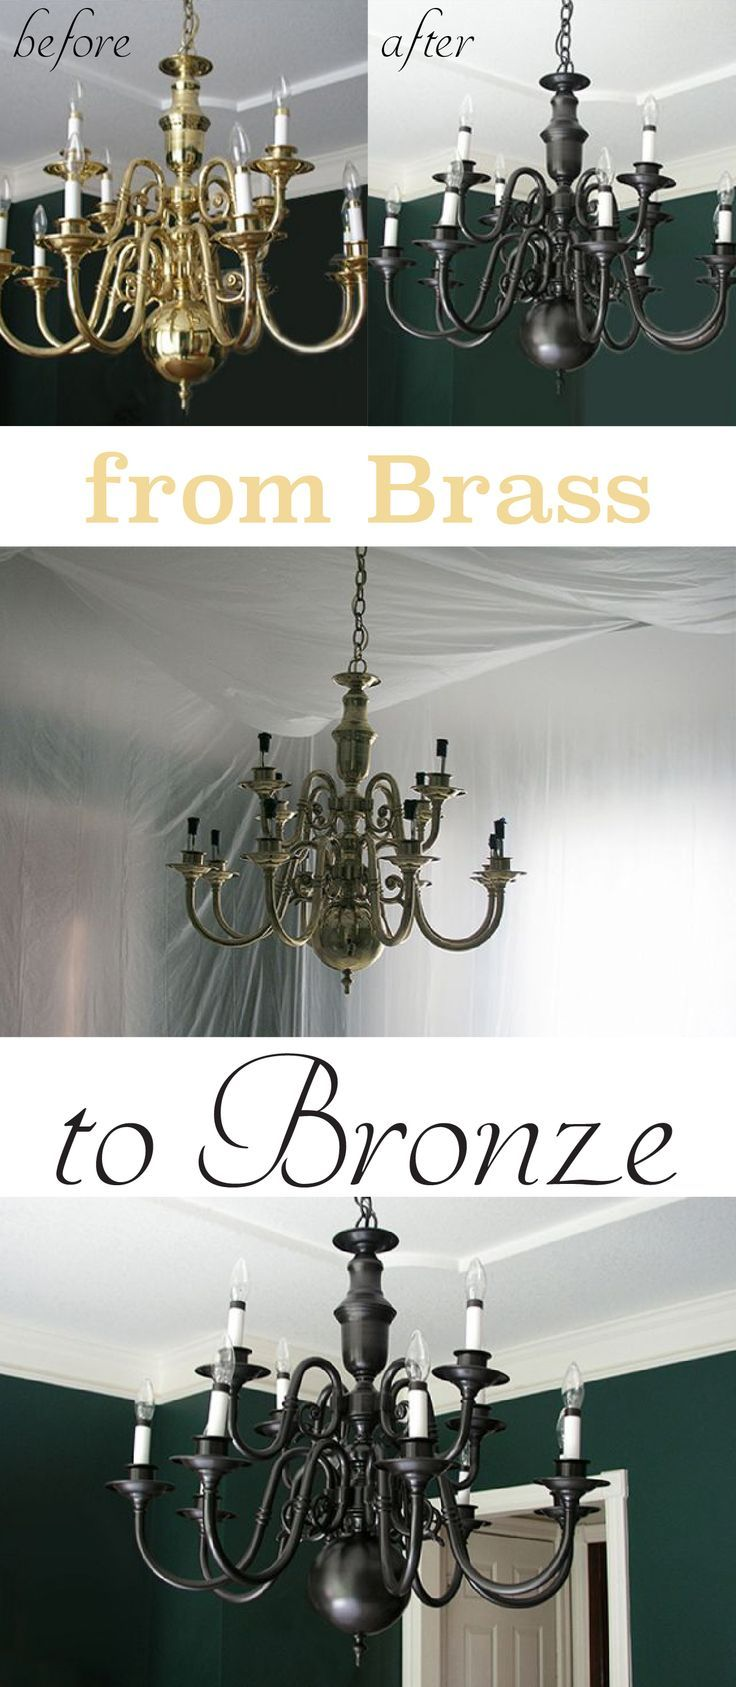 Redesign your chandelier from boring brass to beautiful bronze redesign your chandelier from boring brass to beautiful bronze ehow arubaitofo Choice Image